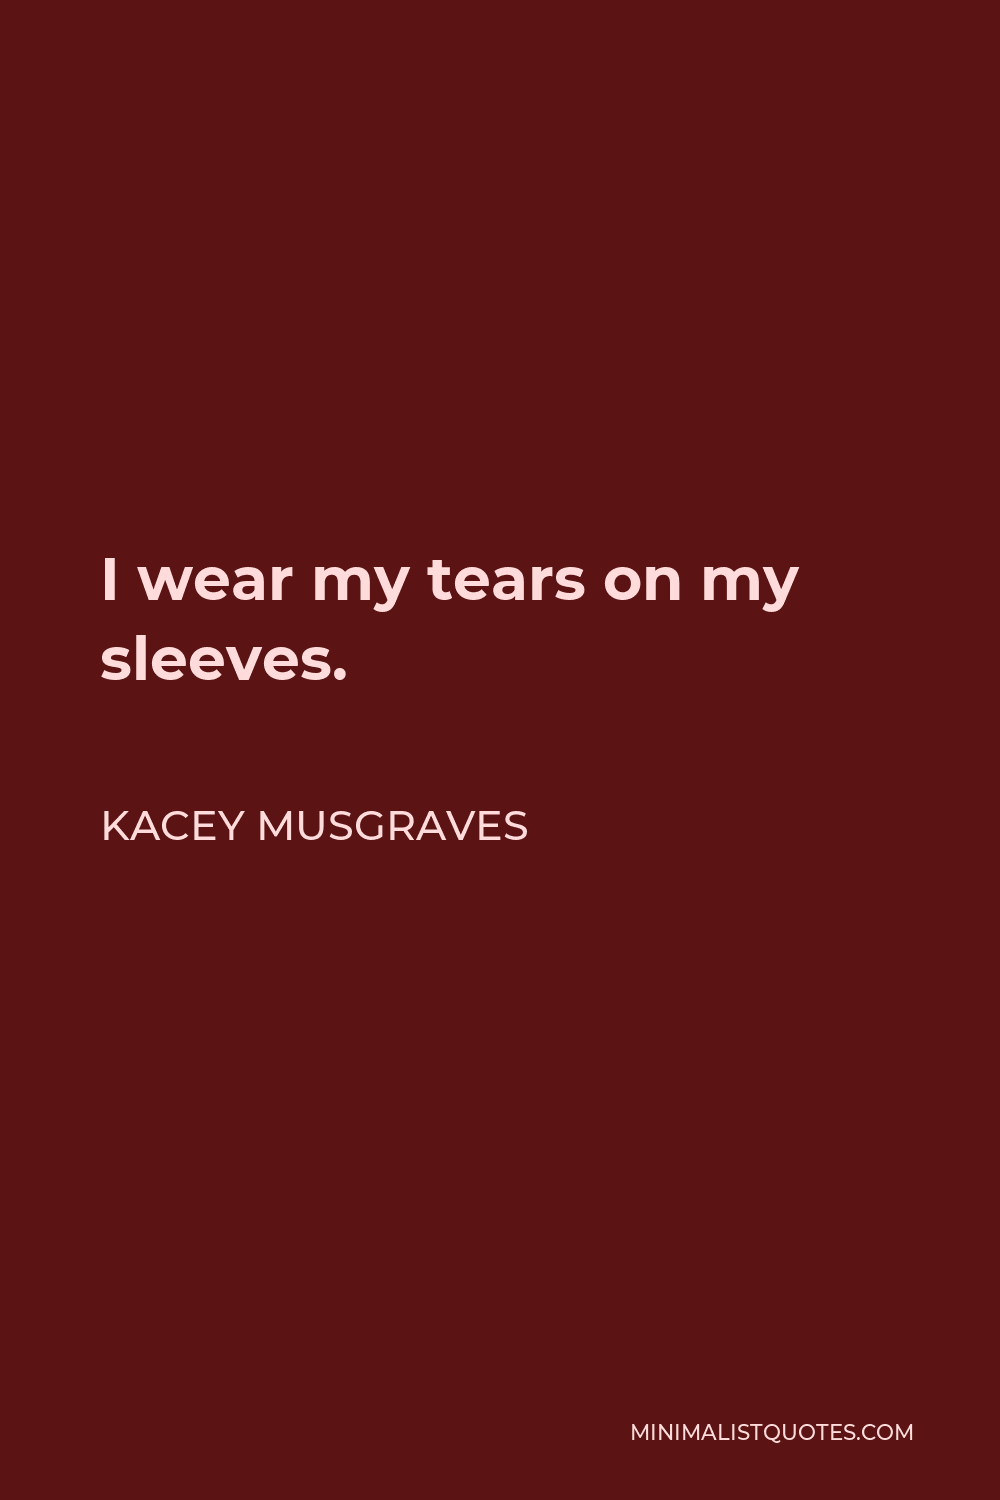 Kacey Musgraves Quote - I wear my tears on my sleeves.